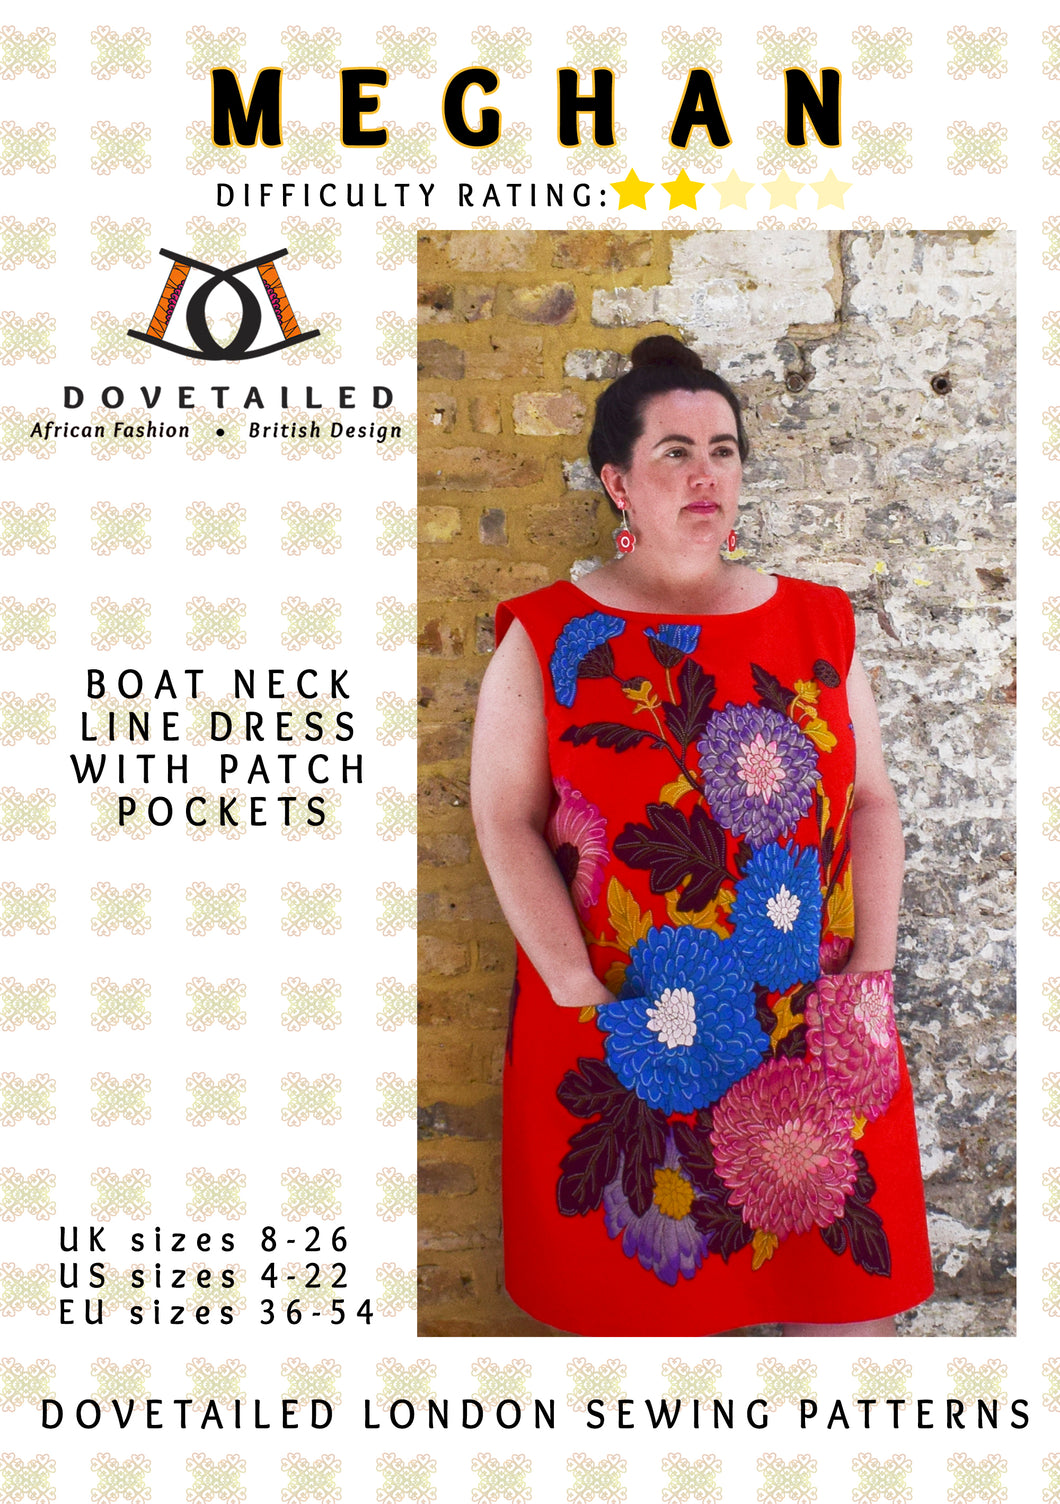 MEGHAN DRESS Sizes 8 - 26 : Boat neck line dress with patch pockets - PAPER SEWING PATTERN by Dovetailed